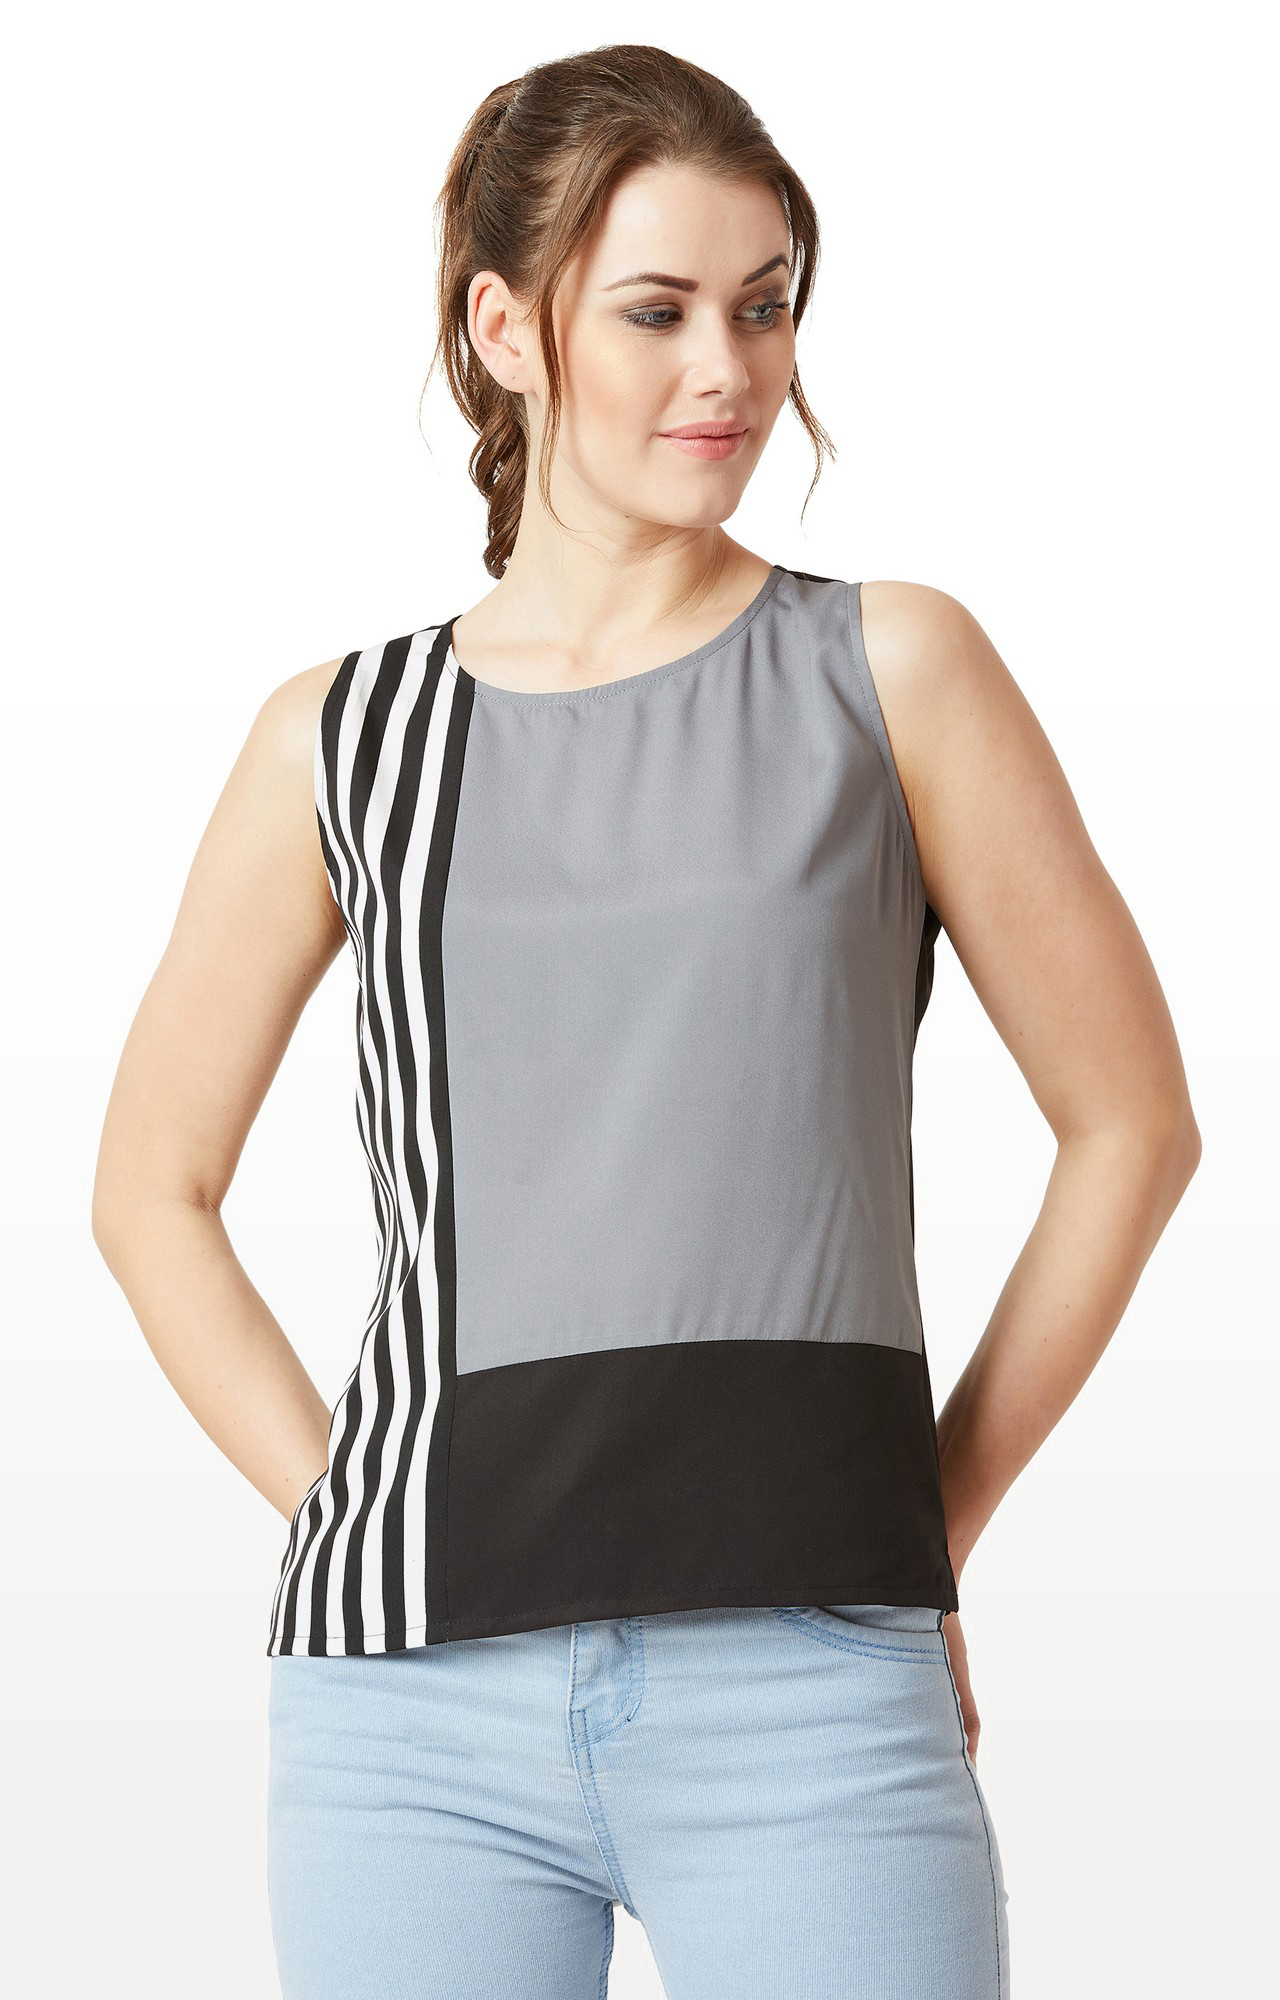 MISS CHASE | Grey and Black Colourblock and Striped Panelled Top